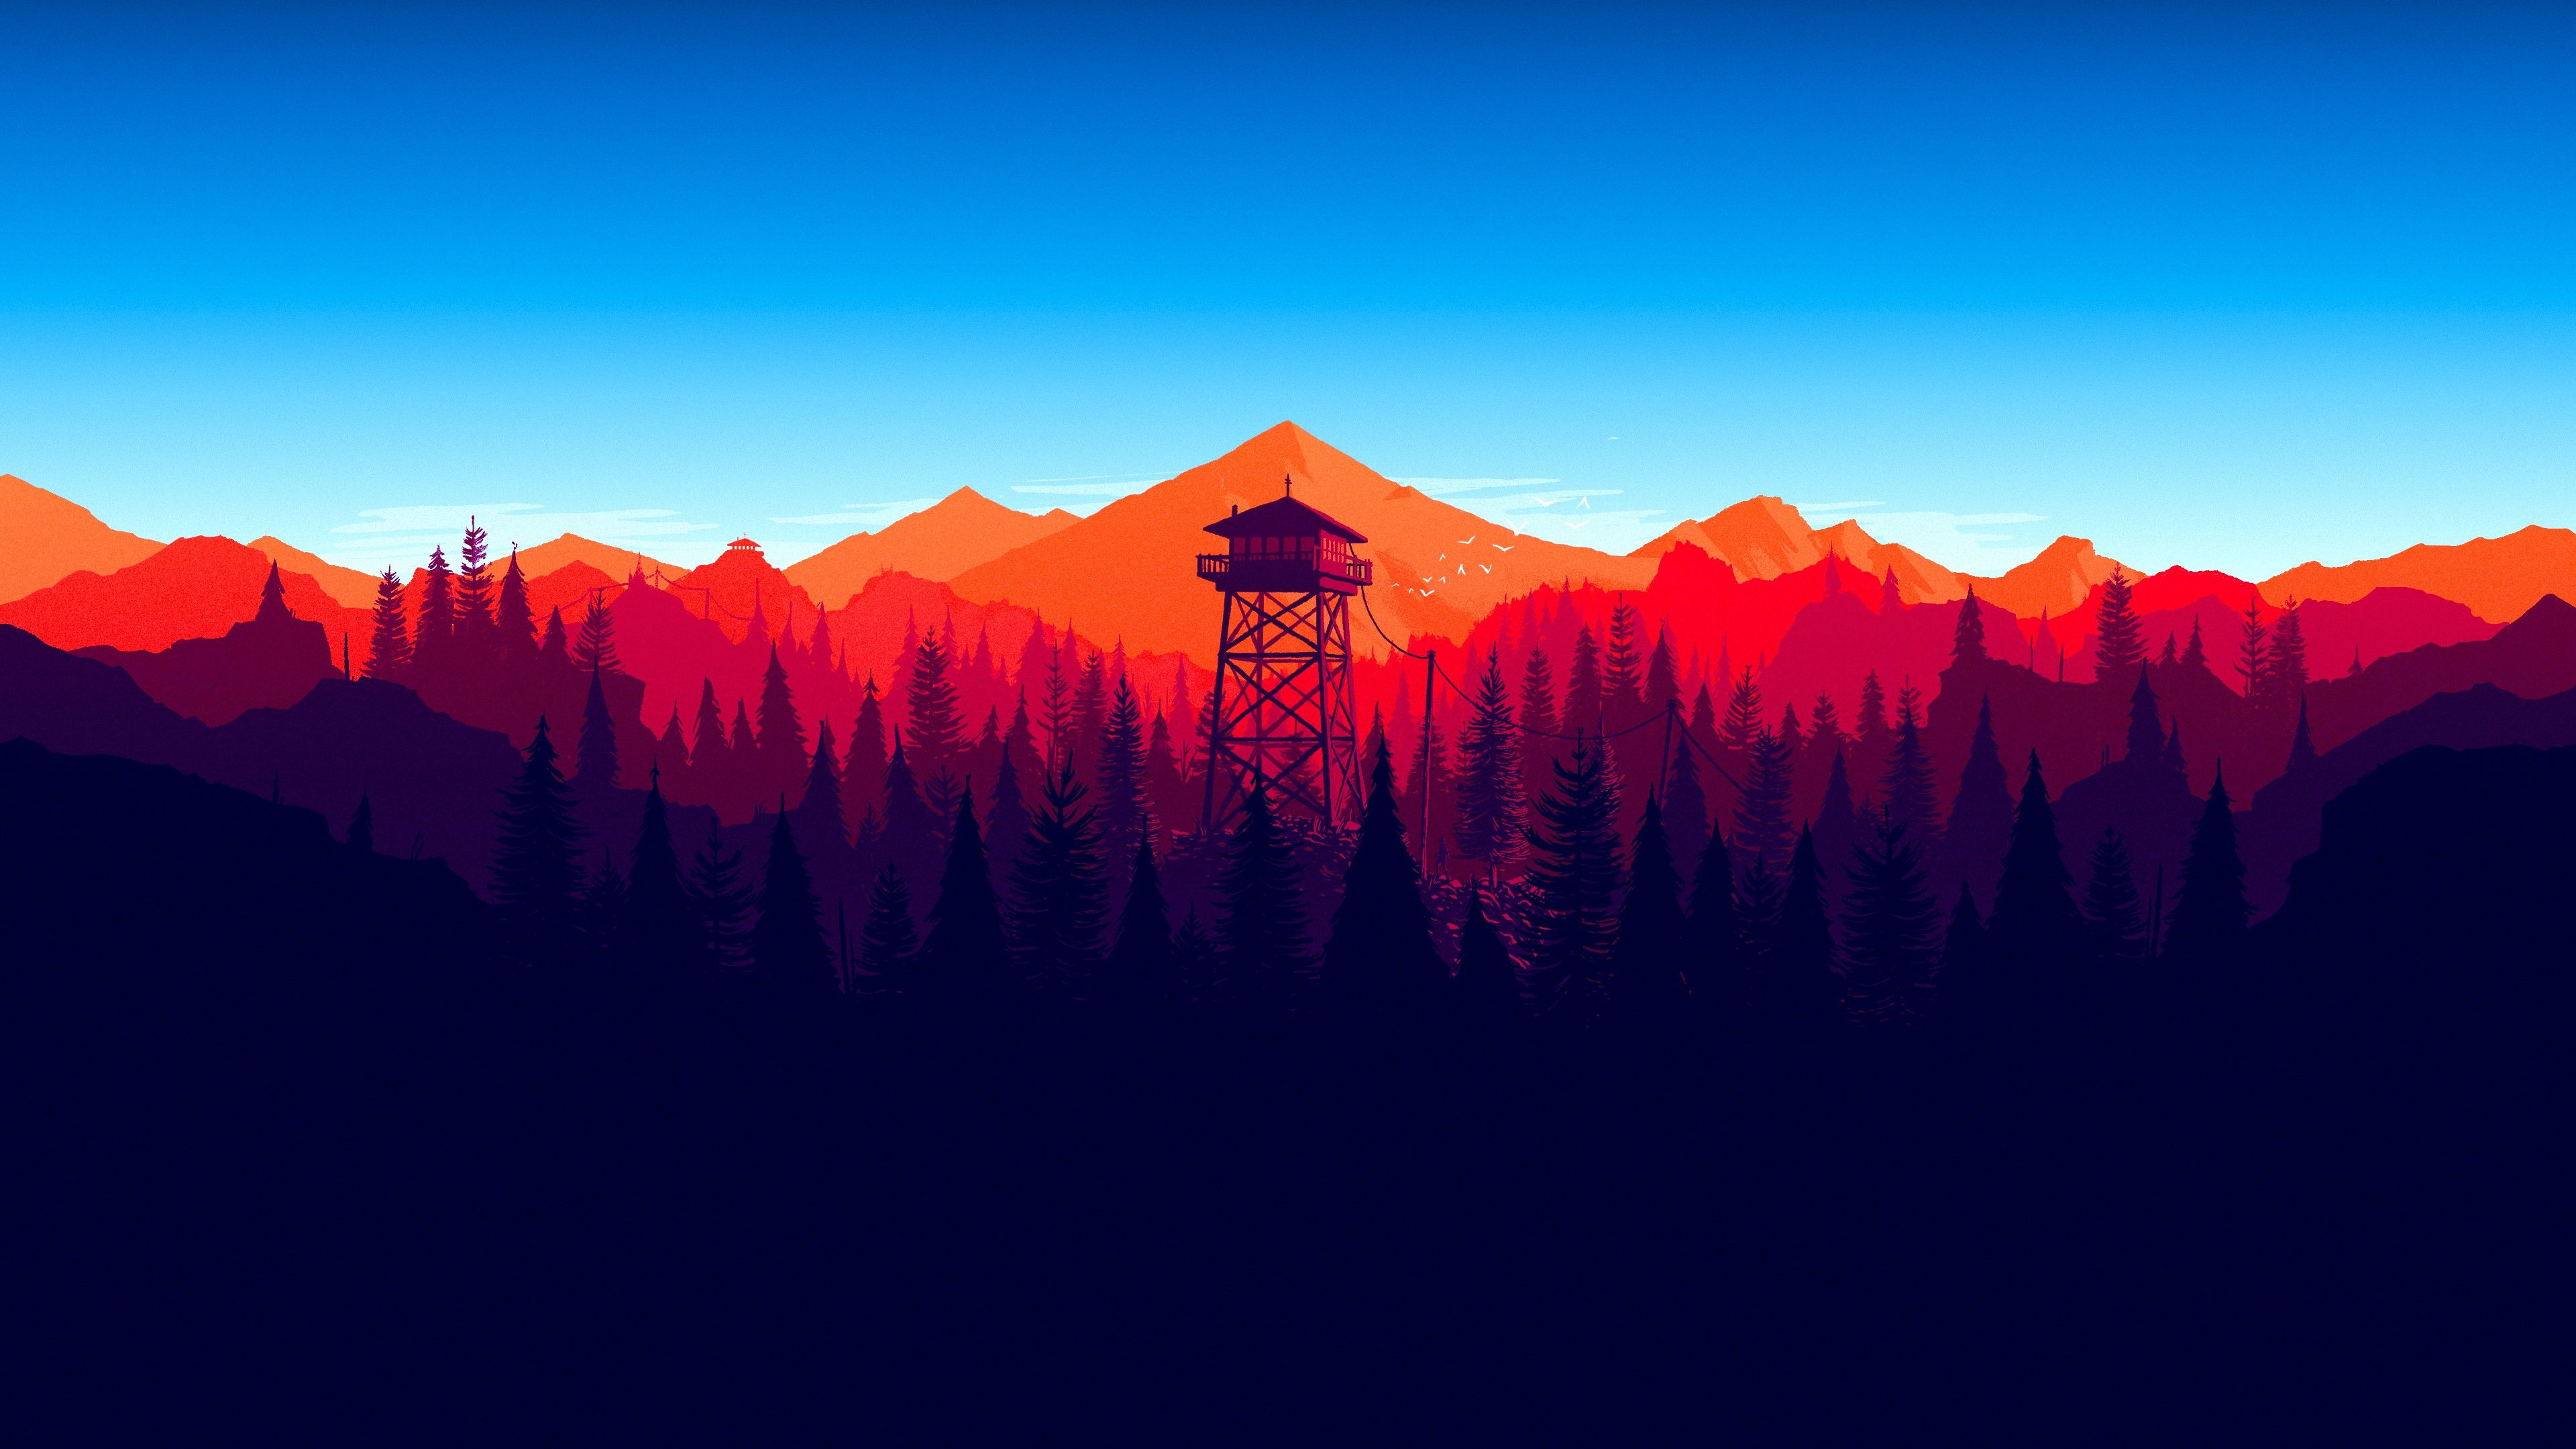 53 4k Pc Wallpapers On Wallpapersafari